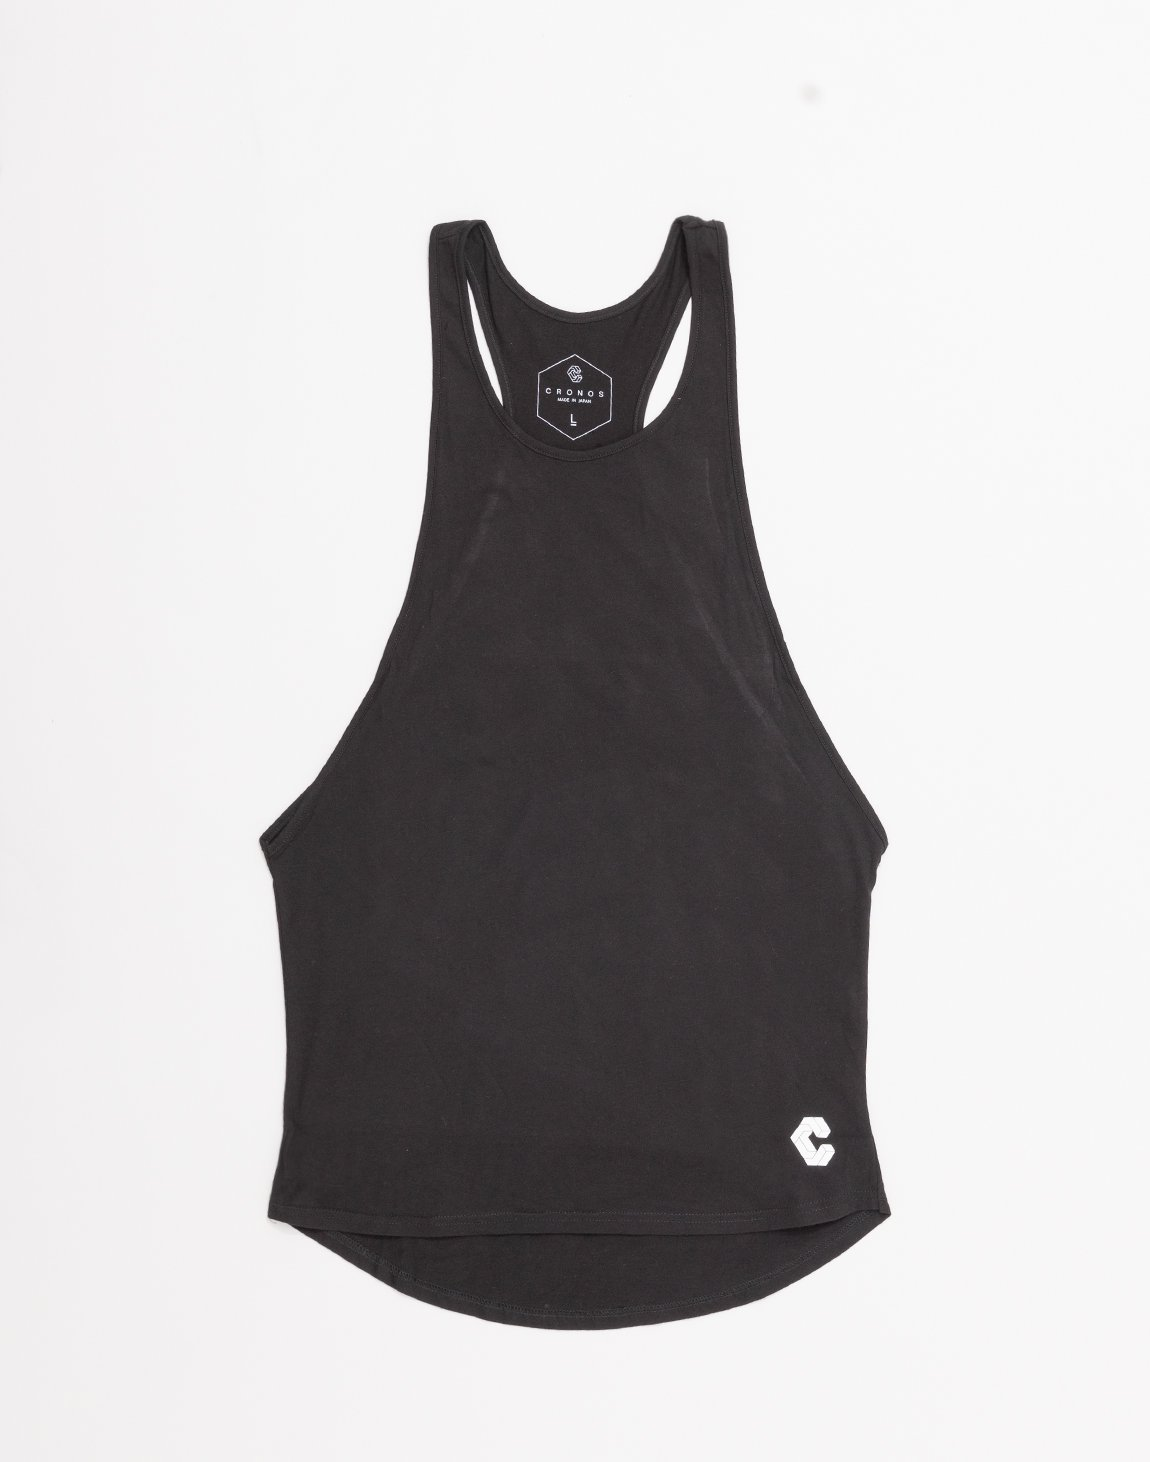 <img class='new_mark_img1' src='https://img.shop-pro.jp/img/new/icons55.gif' style='border:none;display:inline;margin:0px;padding:0px;width:auto;' />CRONOS WIDE CUFFS LOGO TANK TOP 【BLACK】